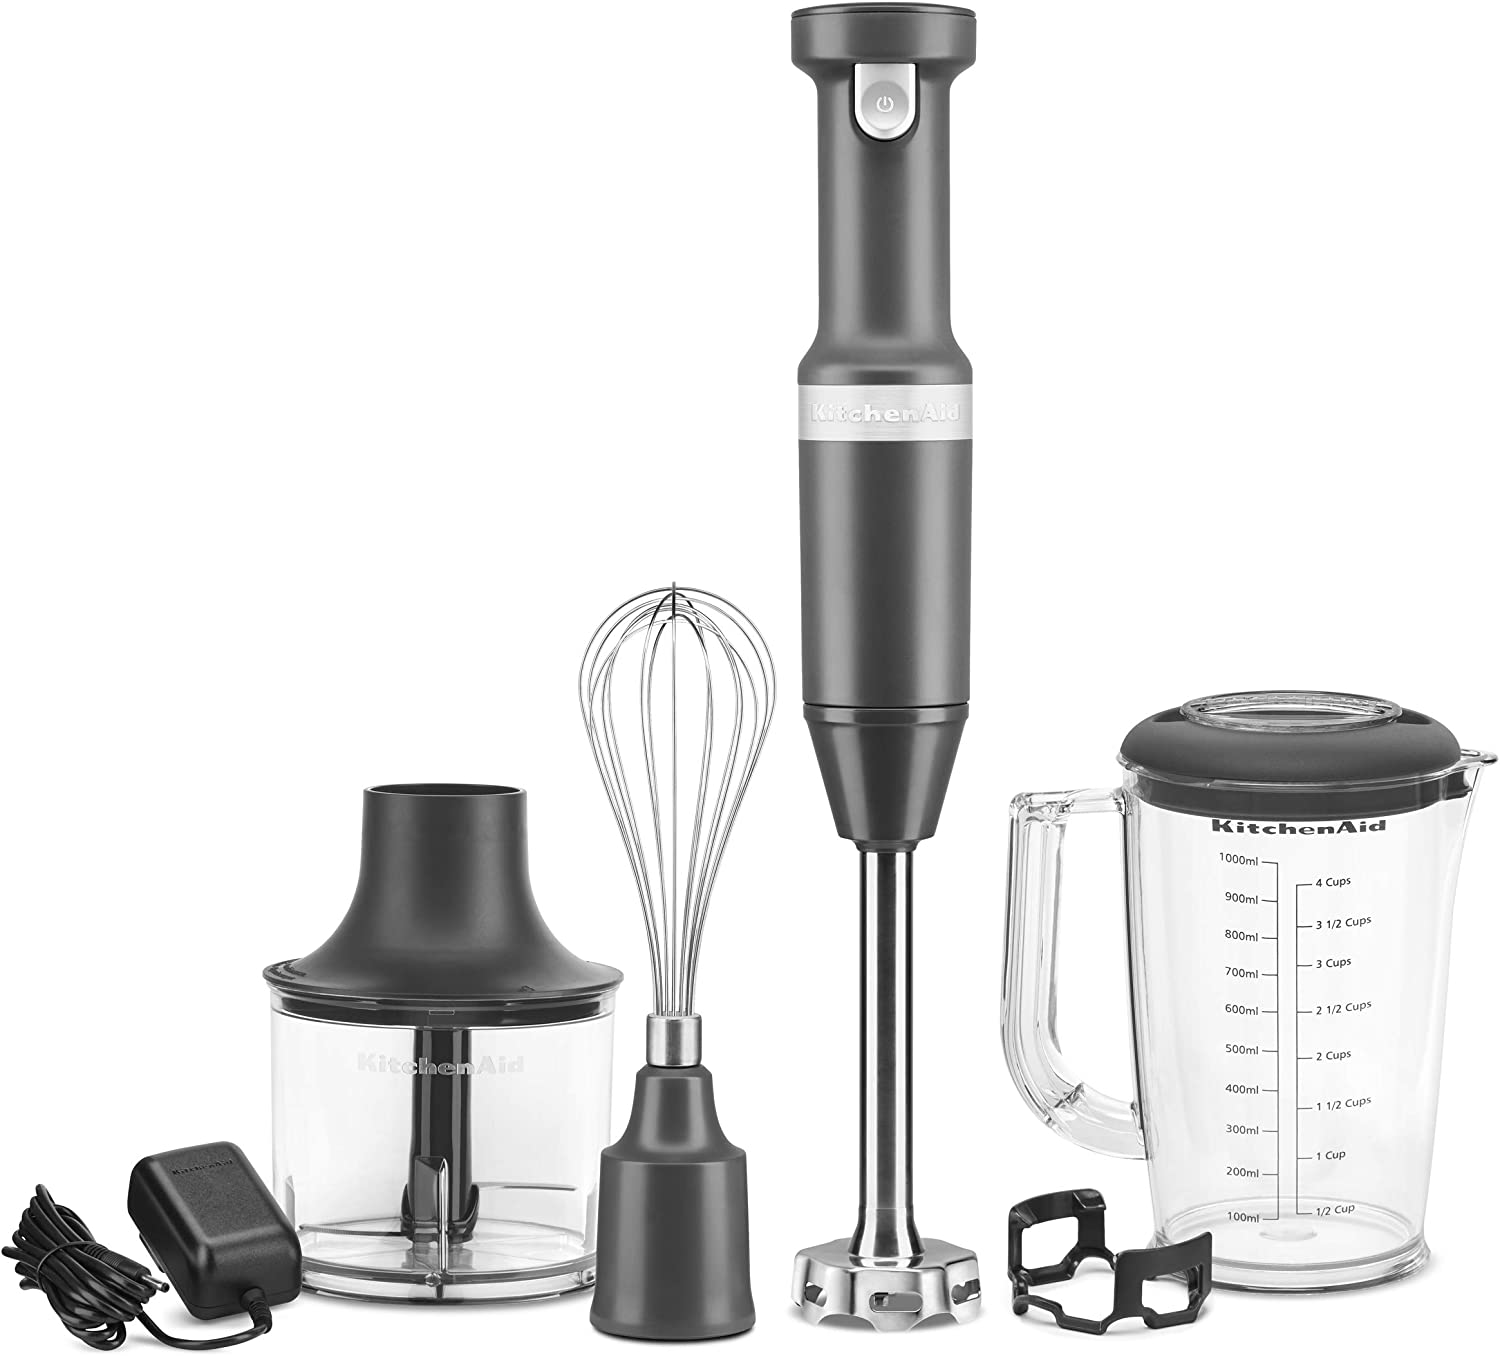 KitchenAid KHBBV83DG Cordless Variable Speed Hand Blender with Chopper and Whisk Attachment, Matte Charcoal Gray